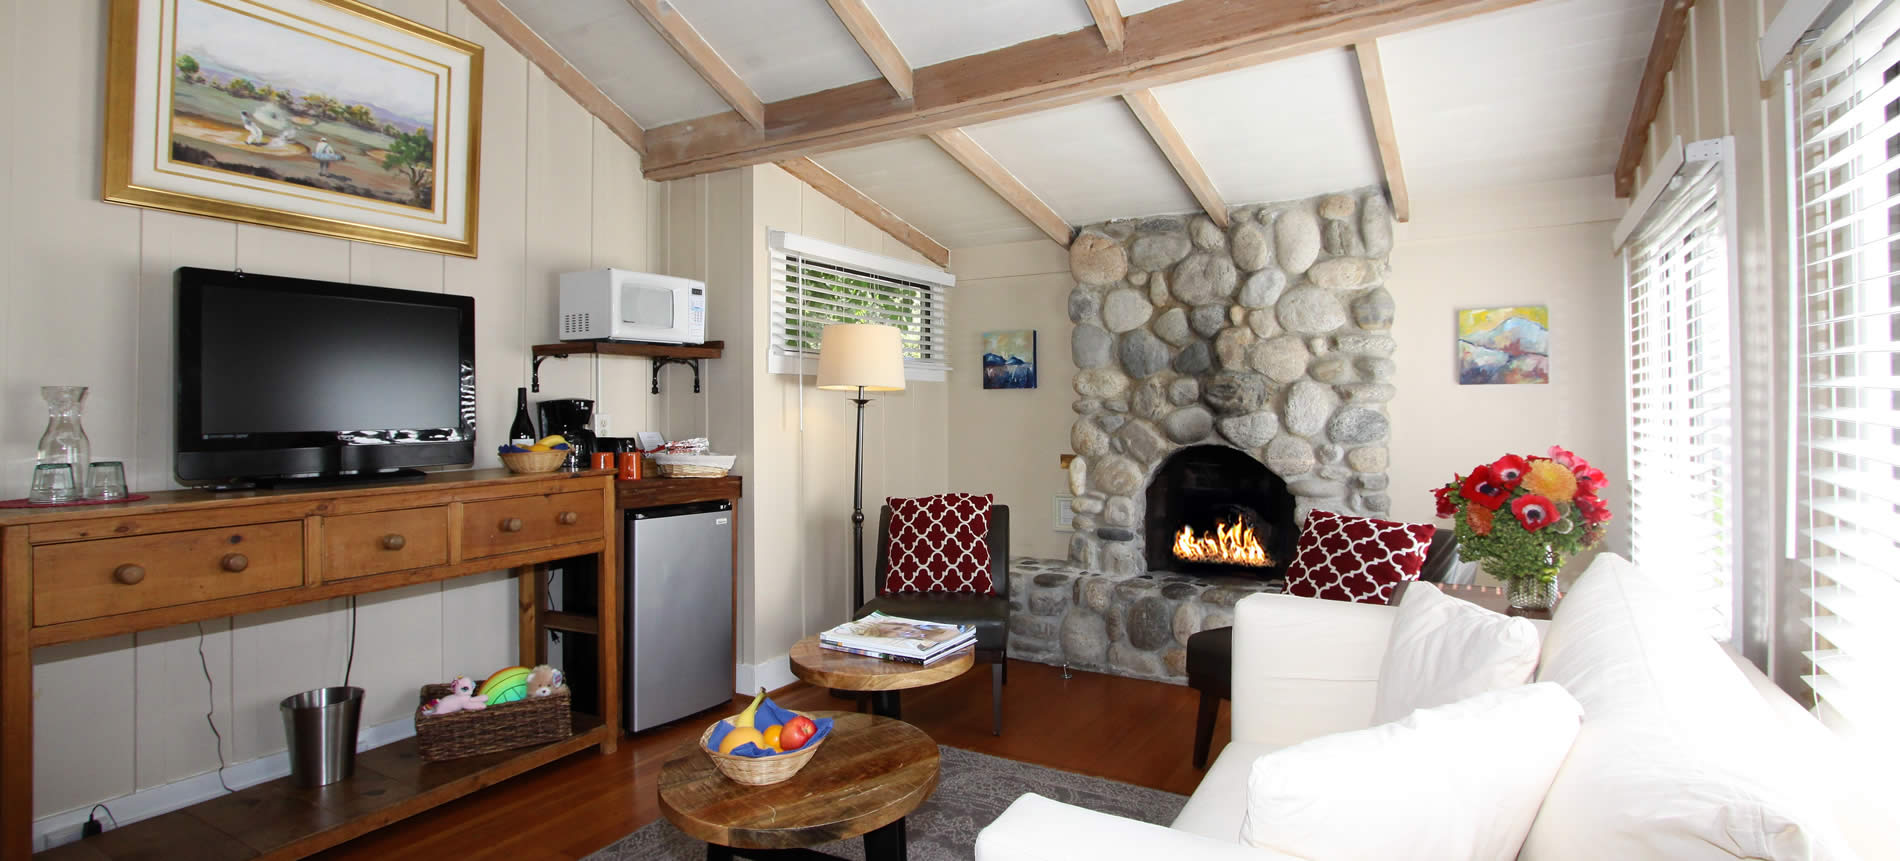 carmel boutique hotel guest room with couch, fireplace, tv and table with fruit